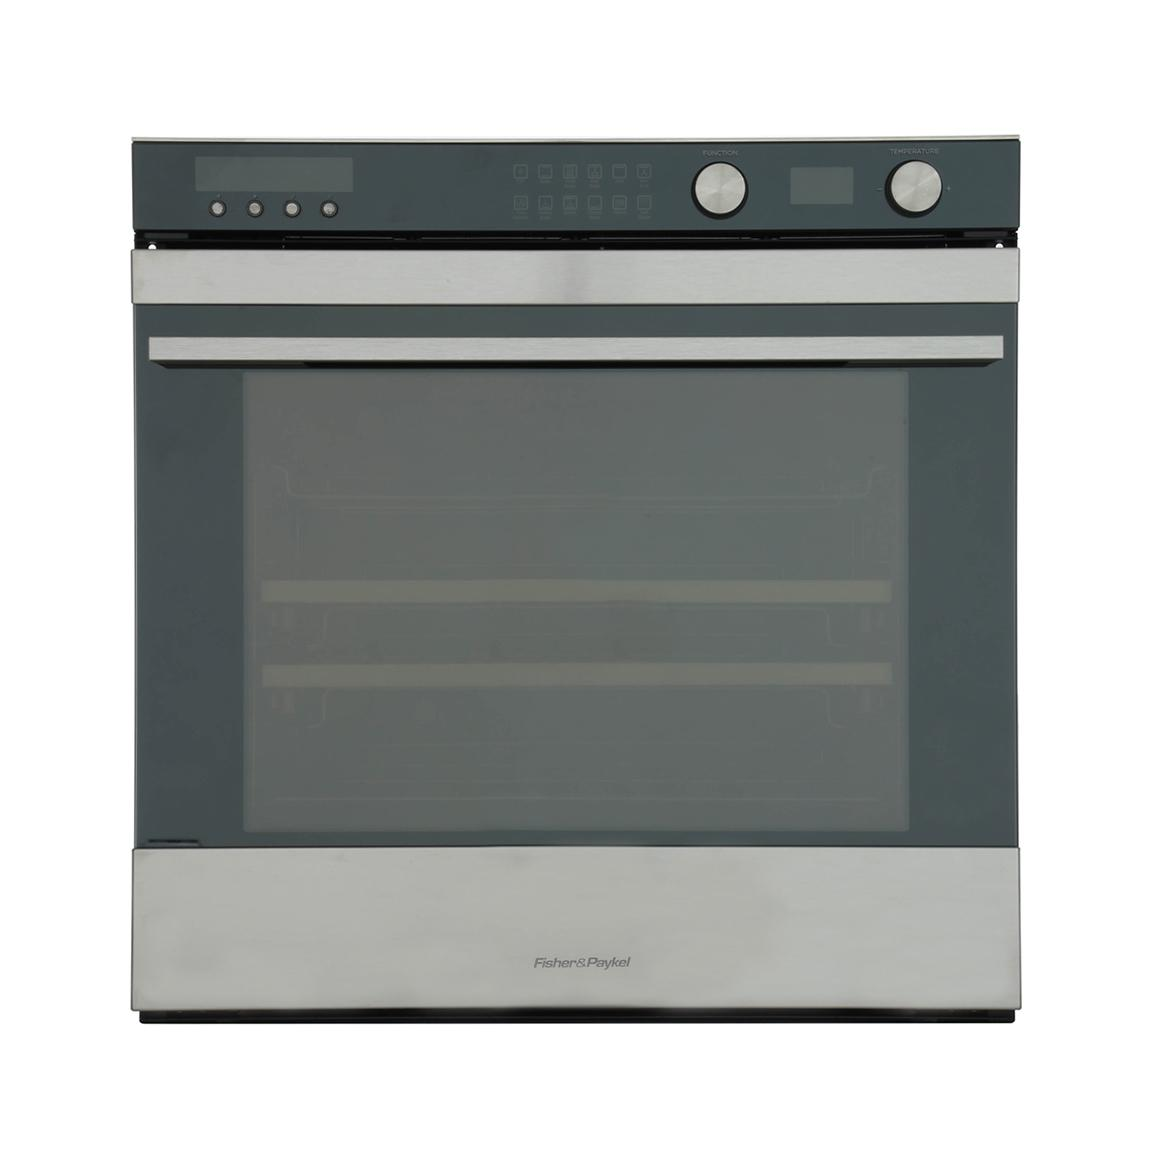 Fisher & Paykel OB60SL11DCPX1 Single Built In Electric Oven